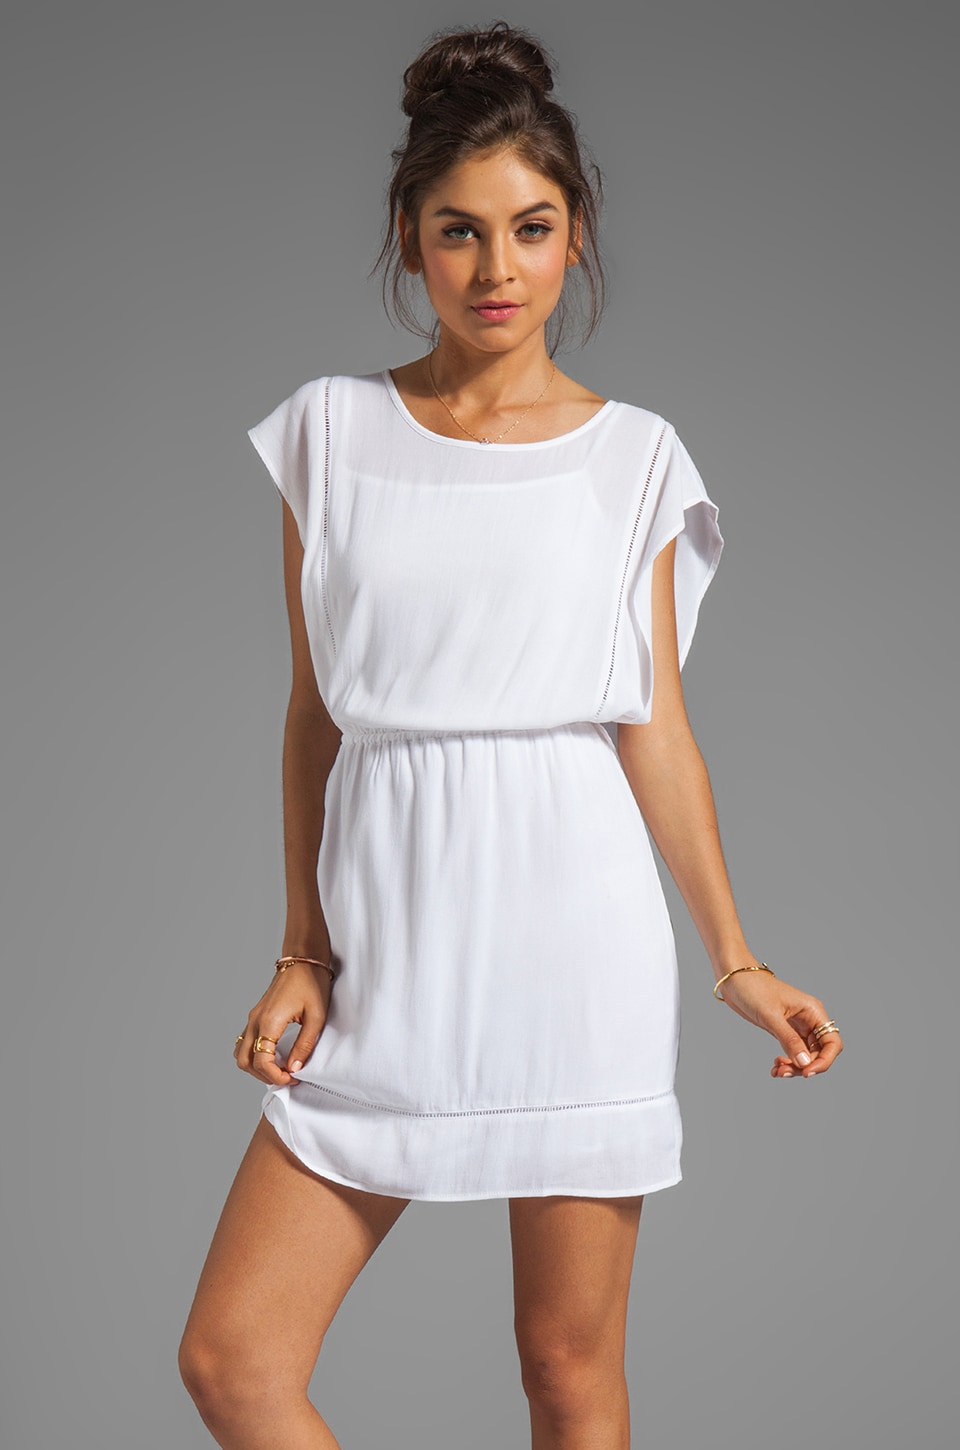 Ella Moss Stella Dress in White